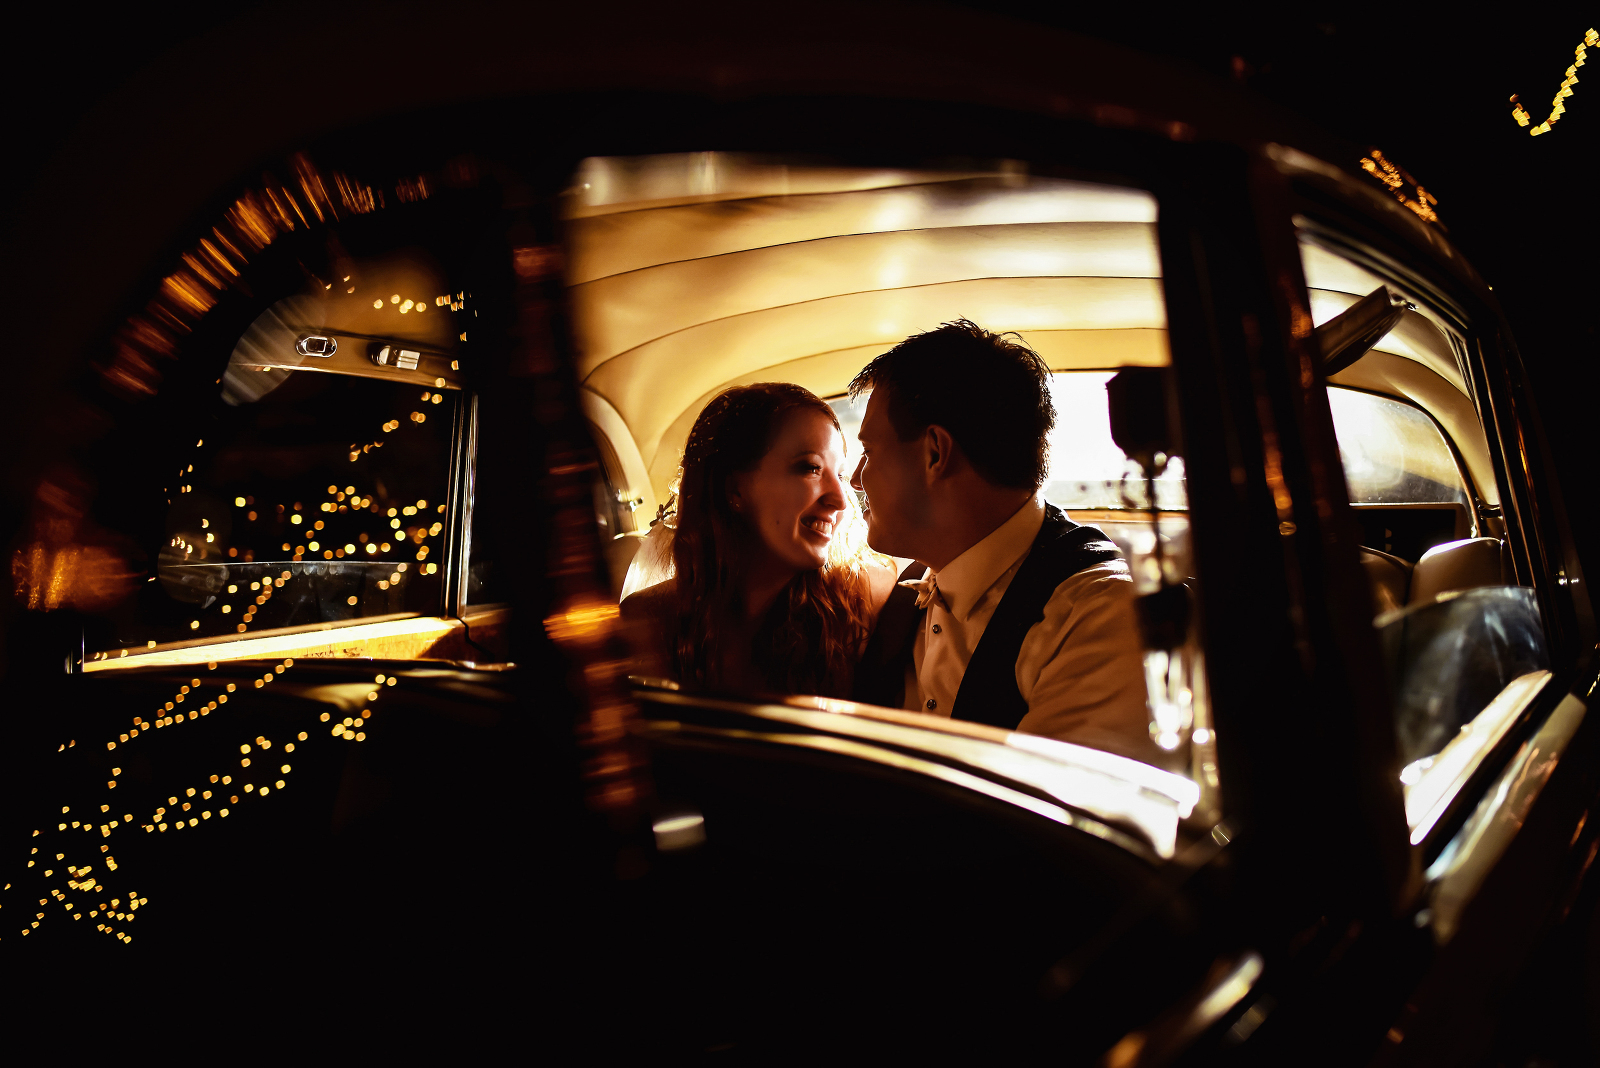 Bride and groom share a tender moment in a car. Photographed by Candice Cusic